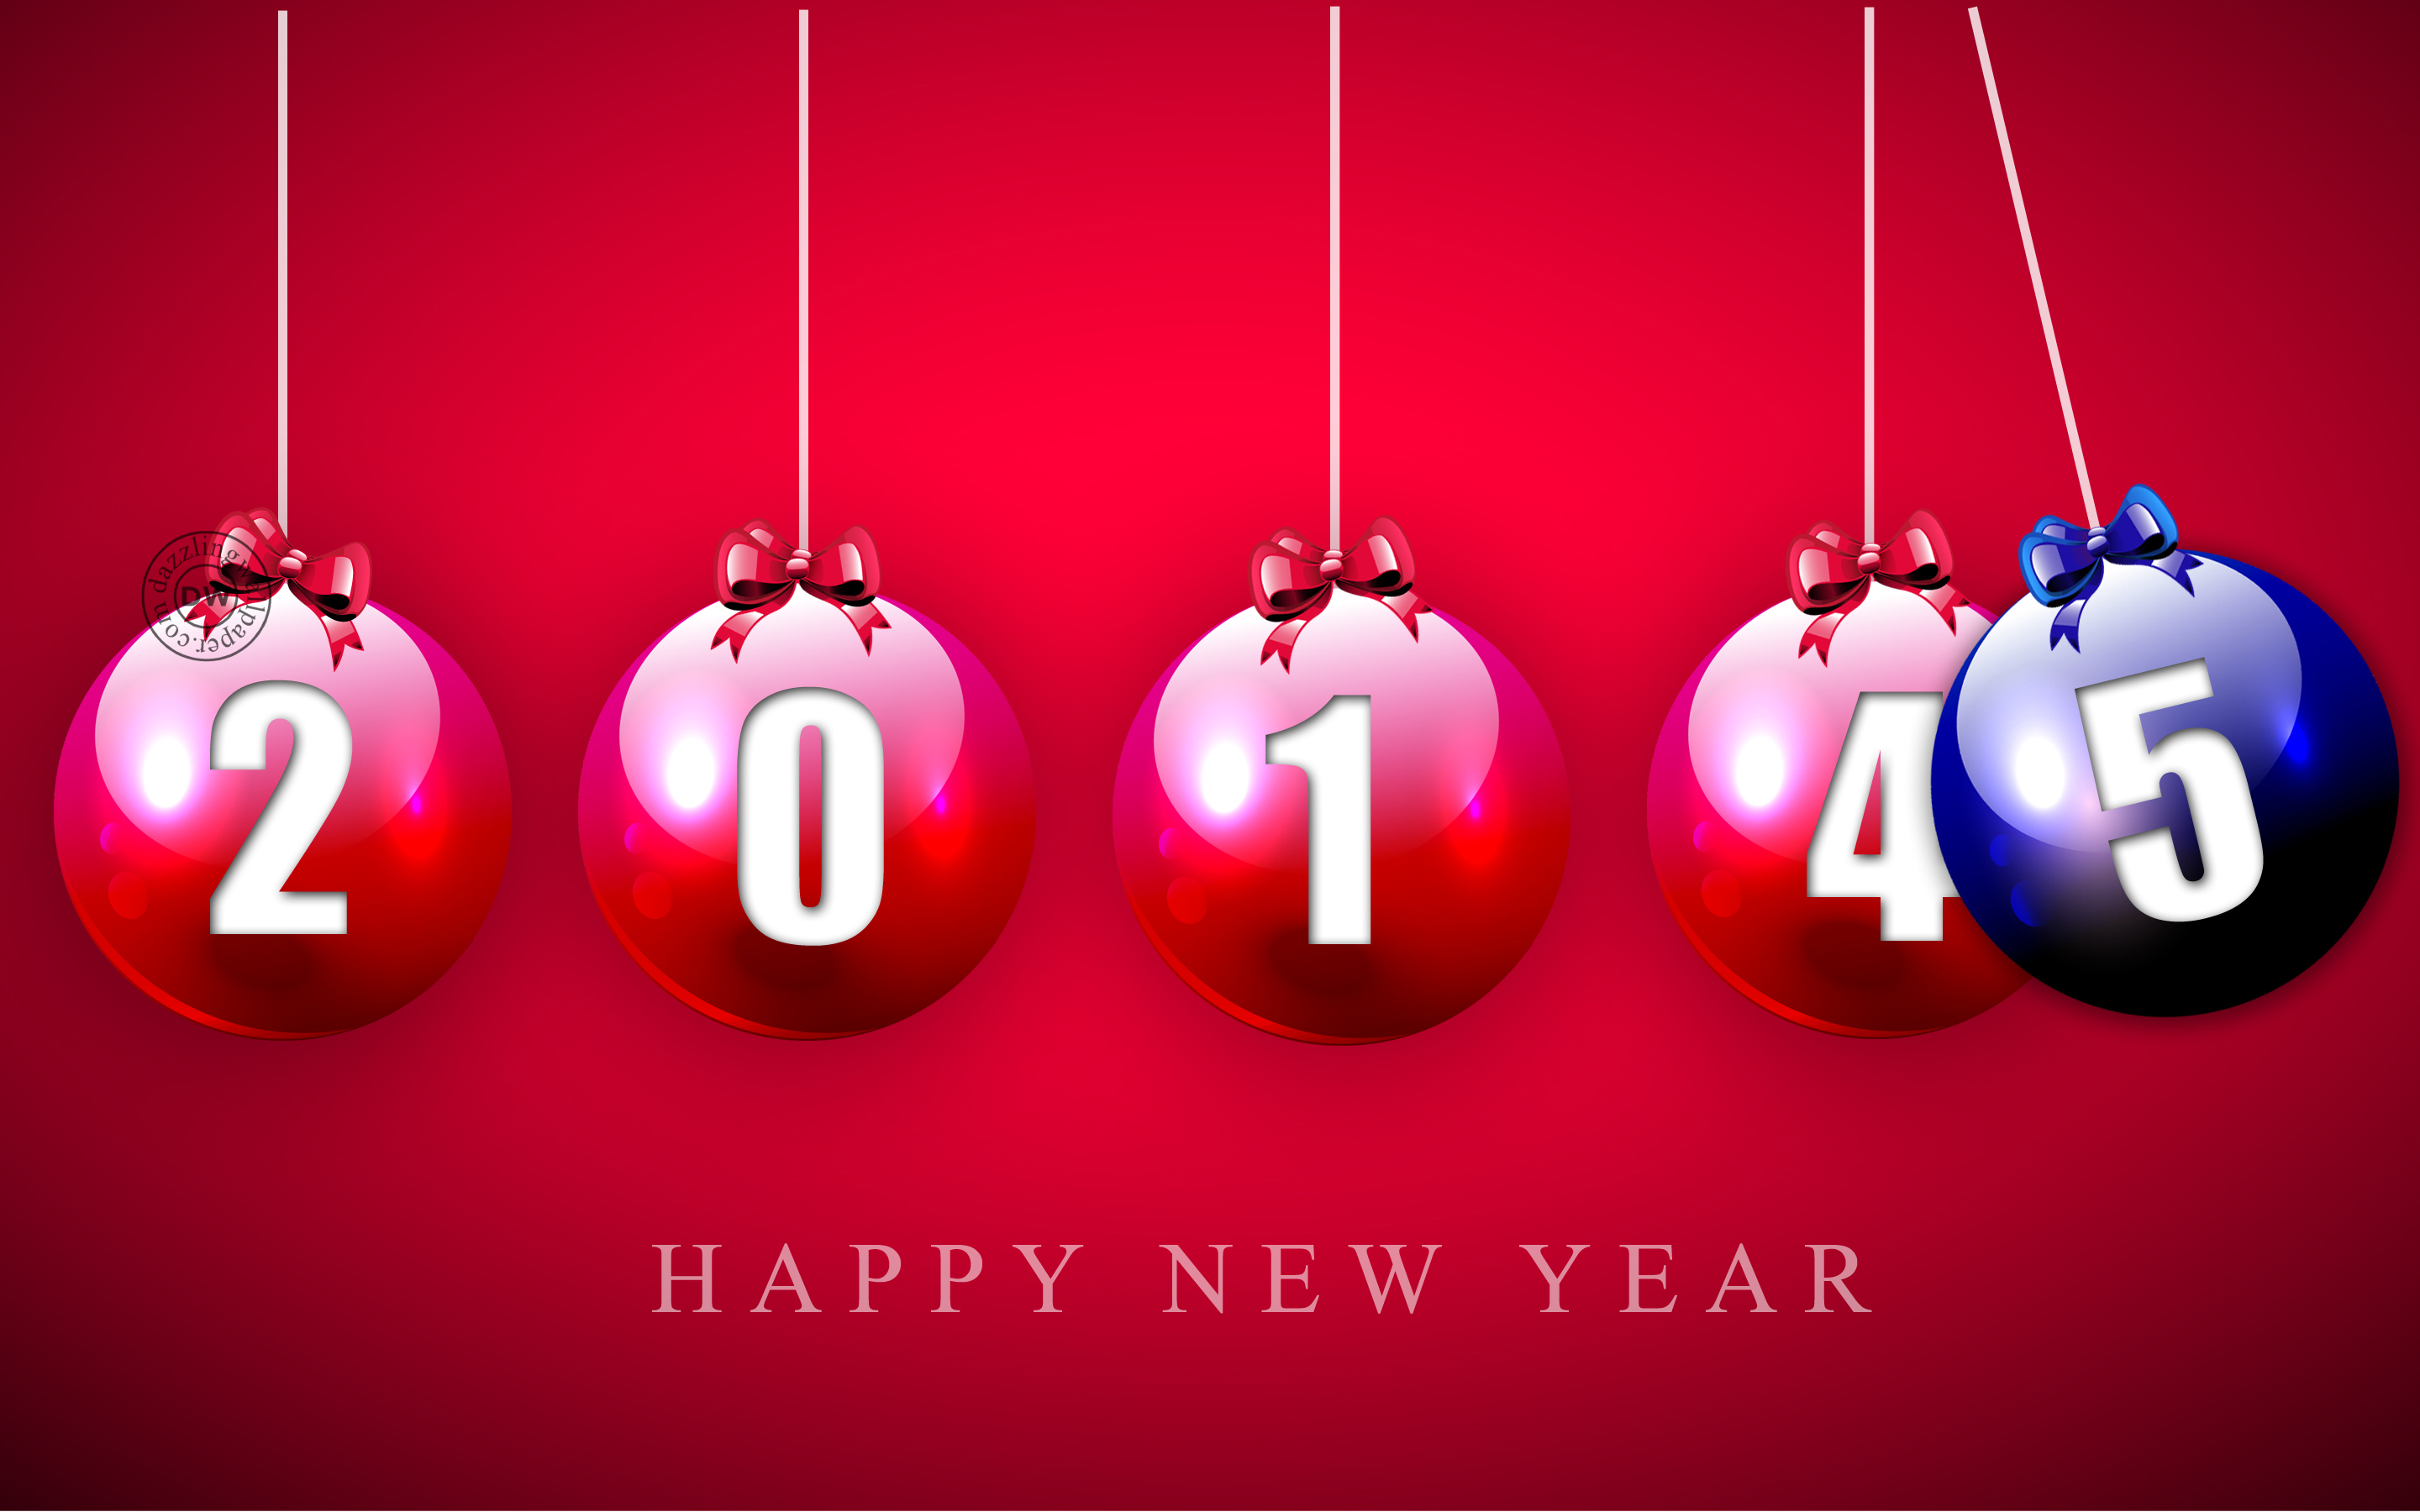 50 Happy New Year Wallpapers 2015 for Desktop 2880x1800